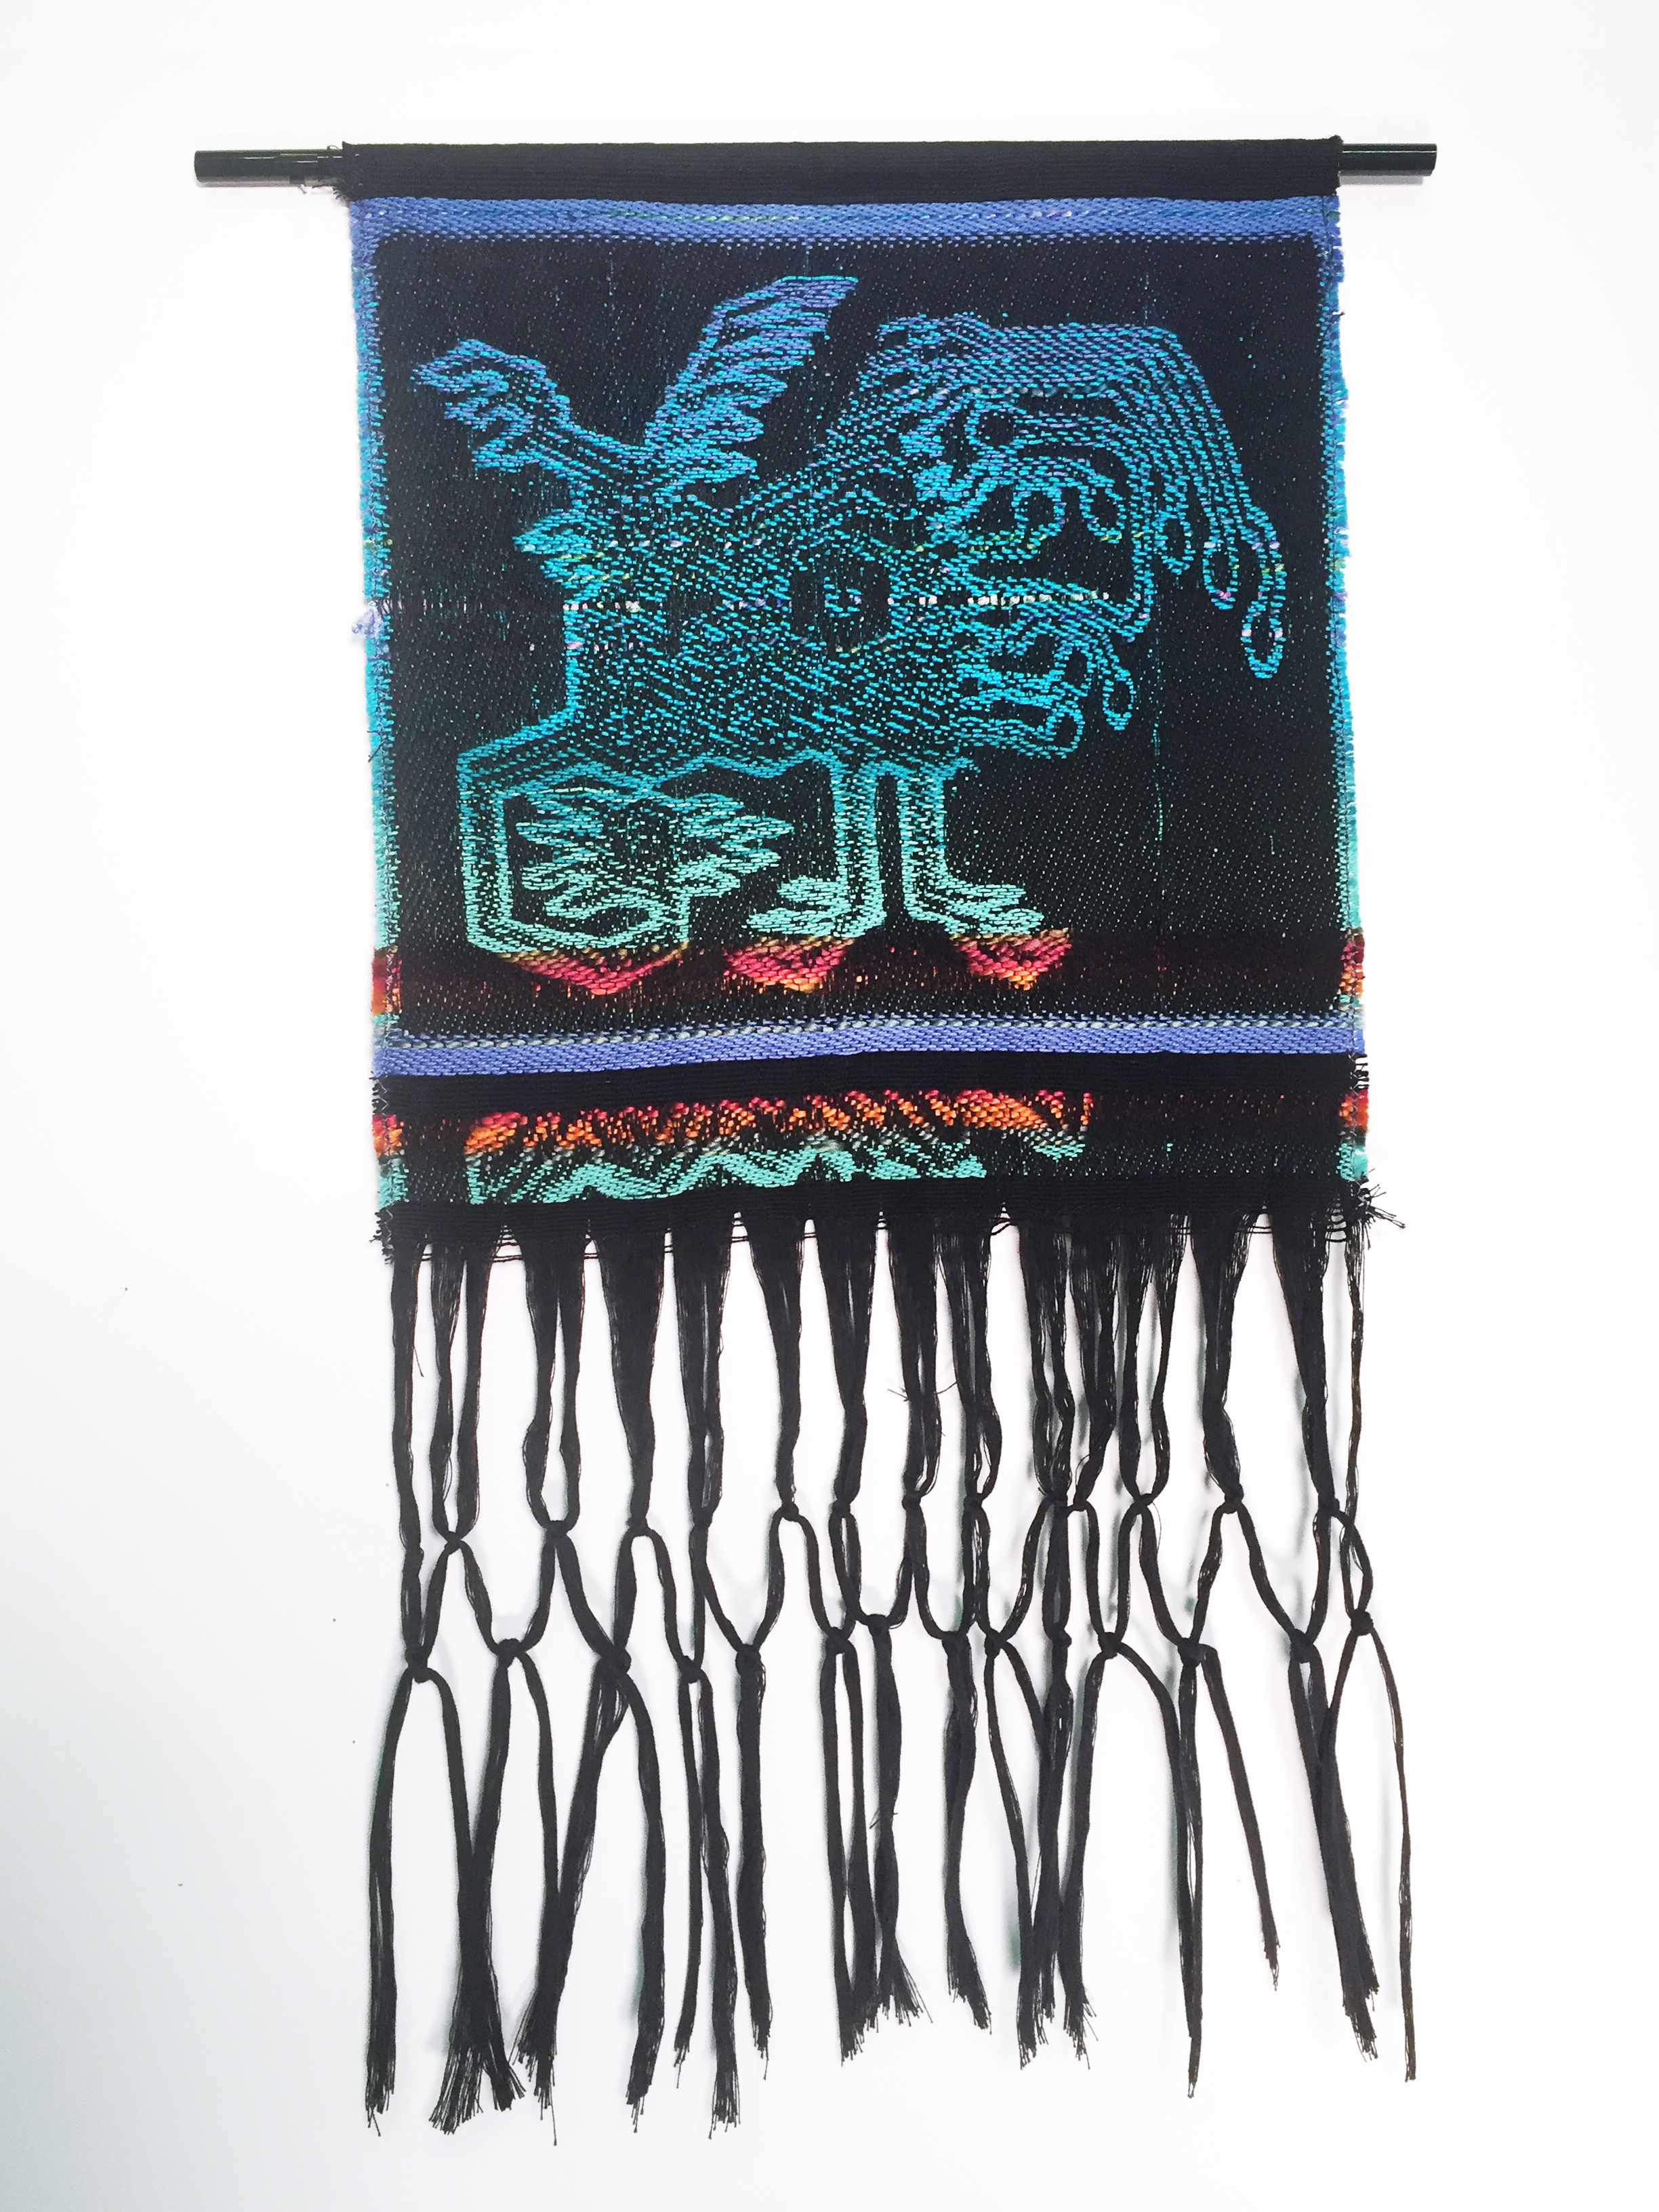 "Robin Kang, Cyber Bird, Hand Jacquard woven cotton, hand dyed wool, and synthetic fibers 12.5 x 23"", 2016"